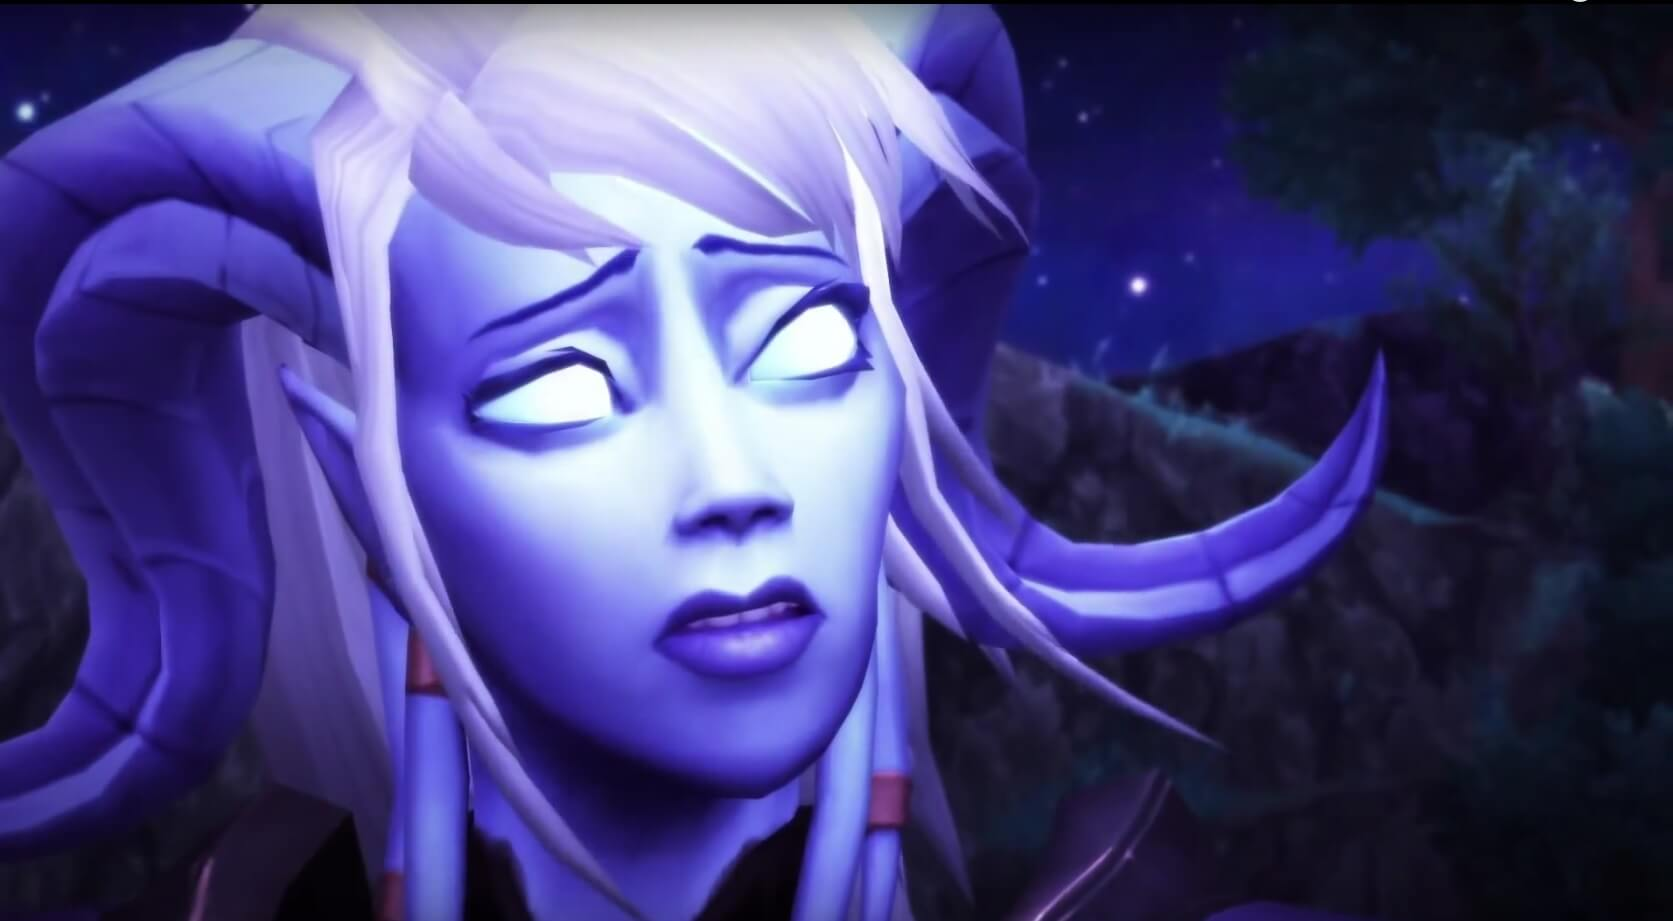 WoW Yrel confused